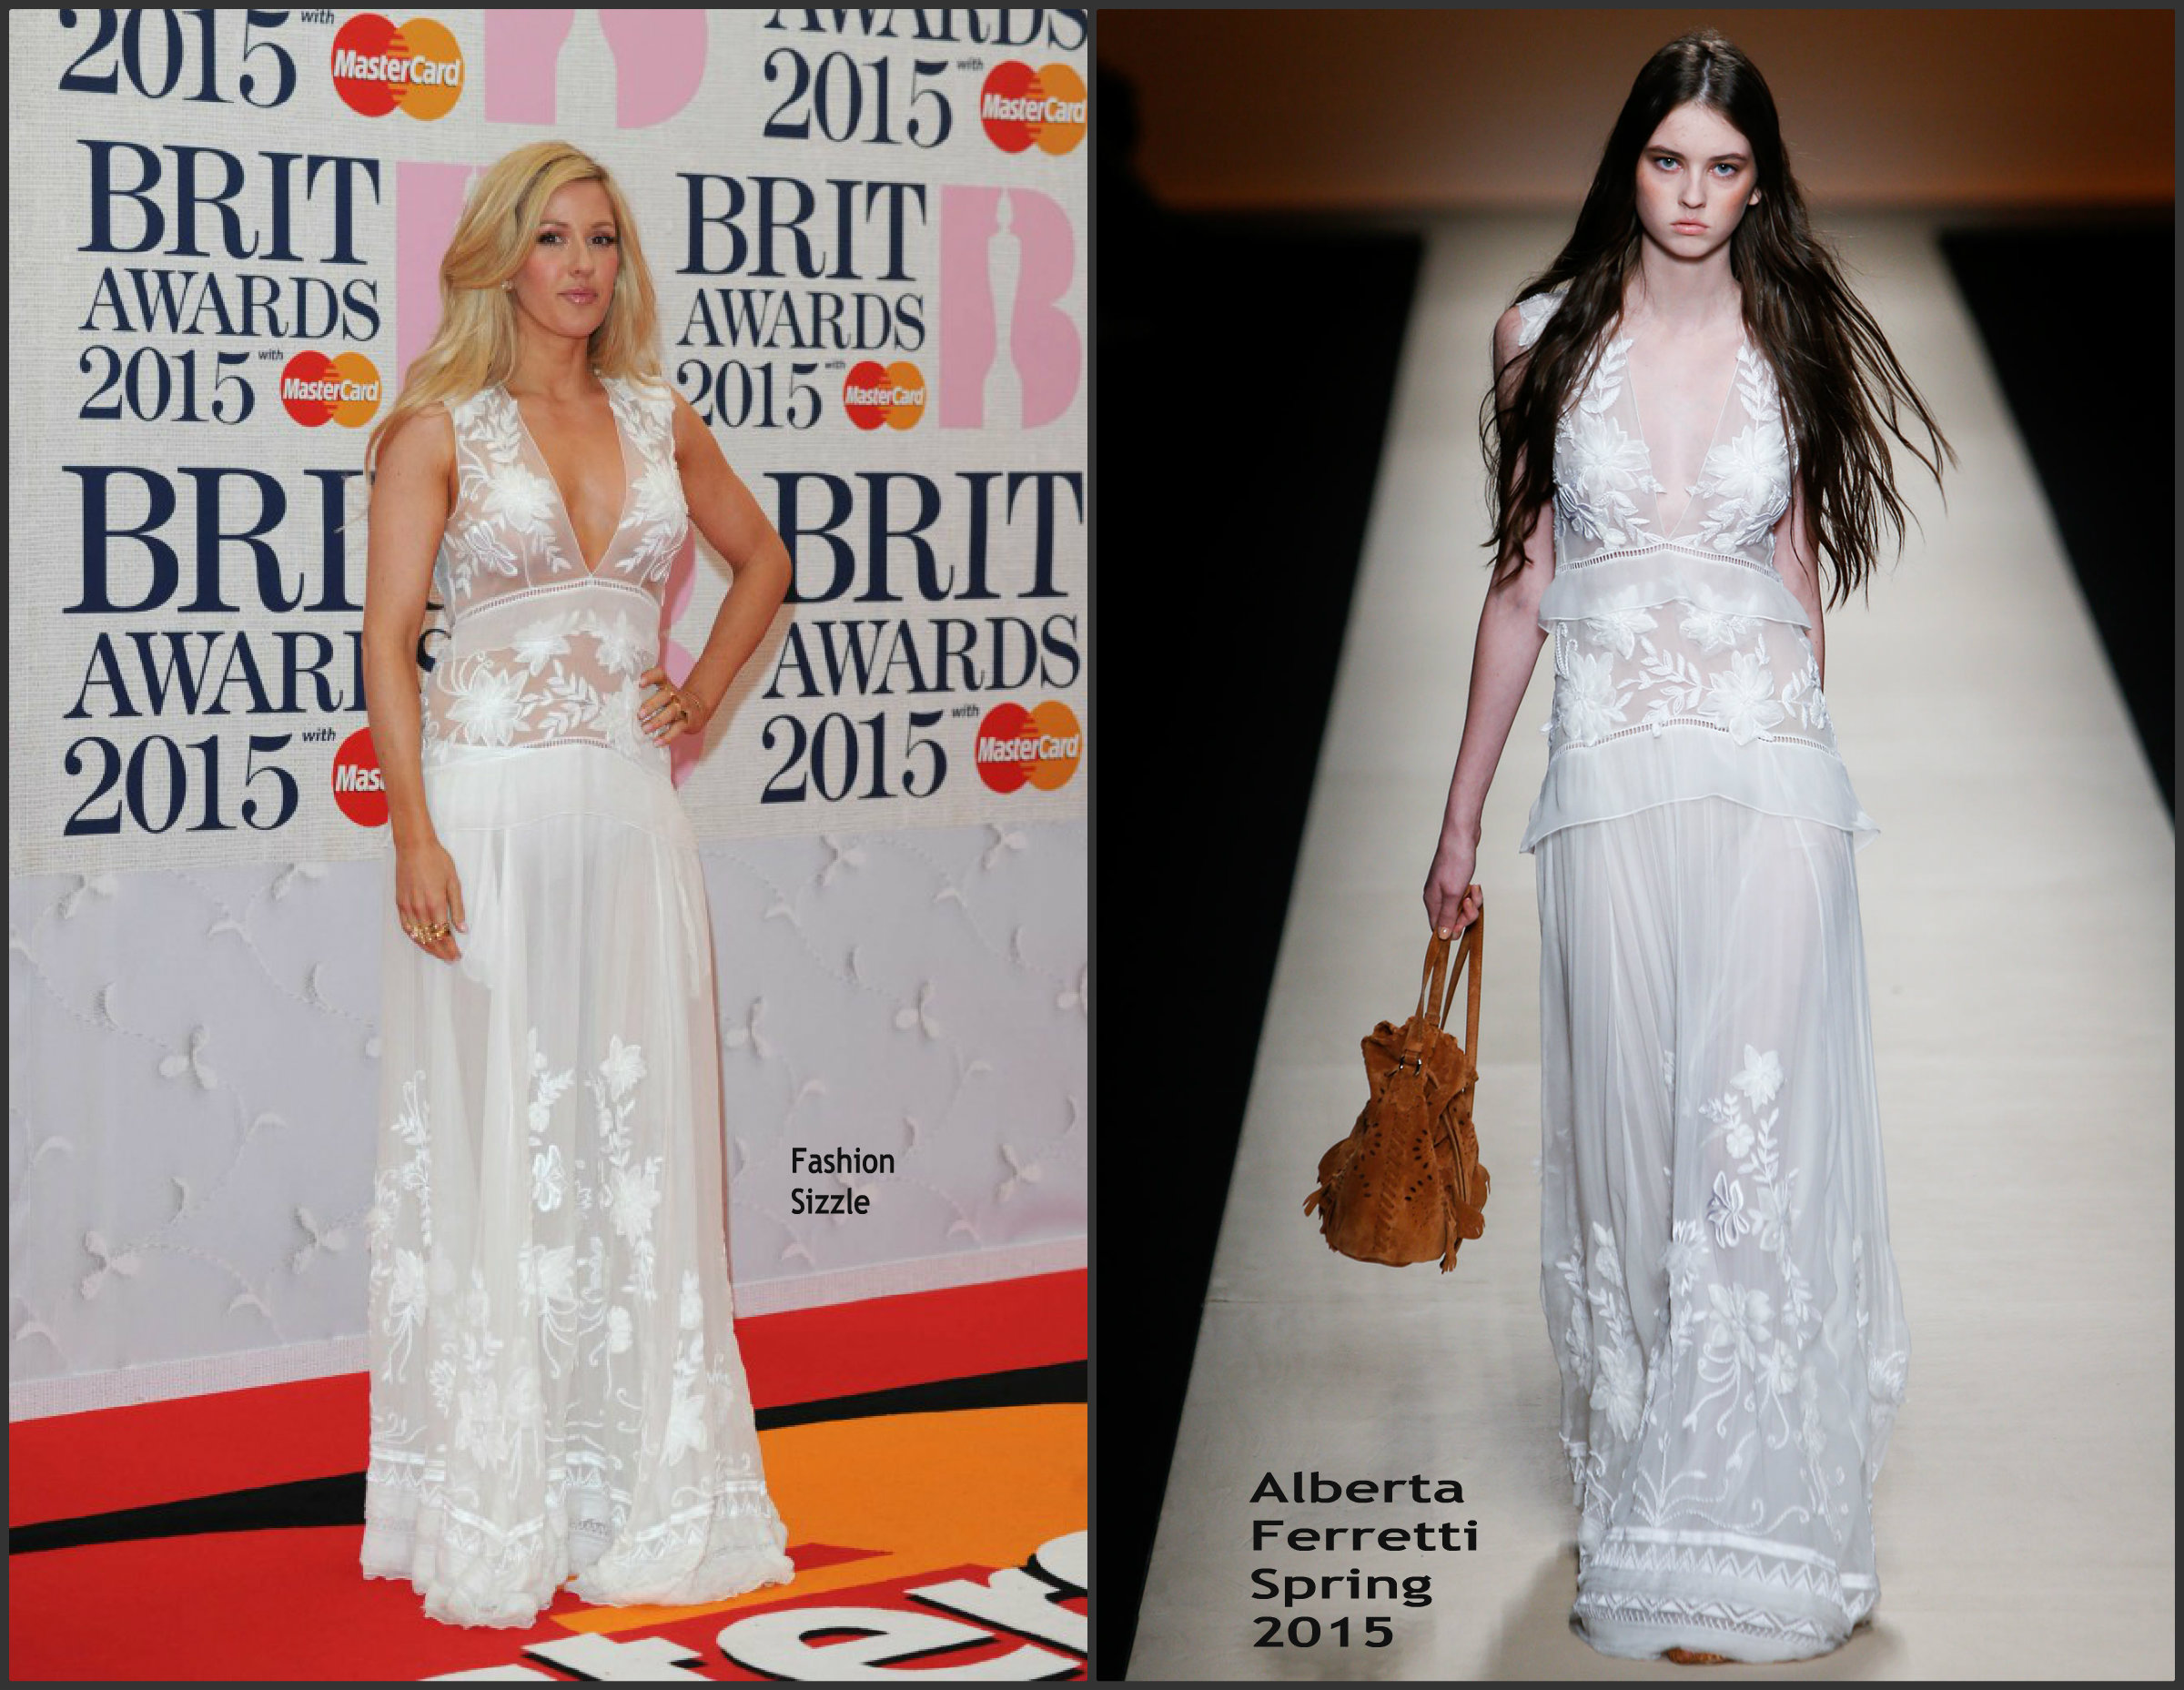 Ellie-Goulding-In-Alberta-Ferretti-at-the-2015-Brit-Awards